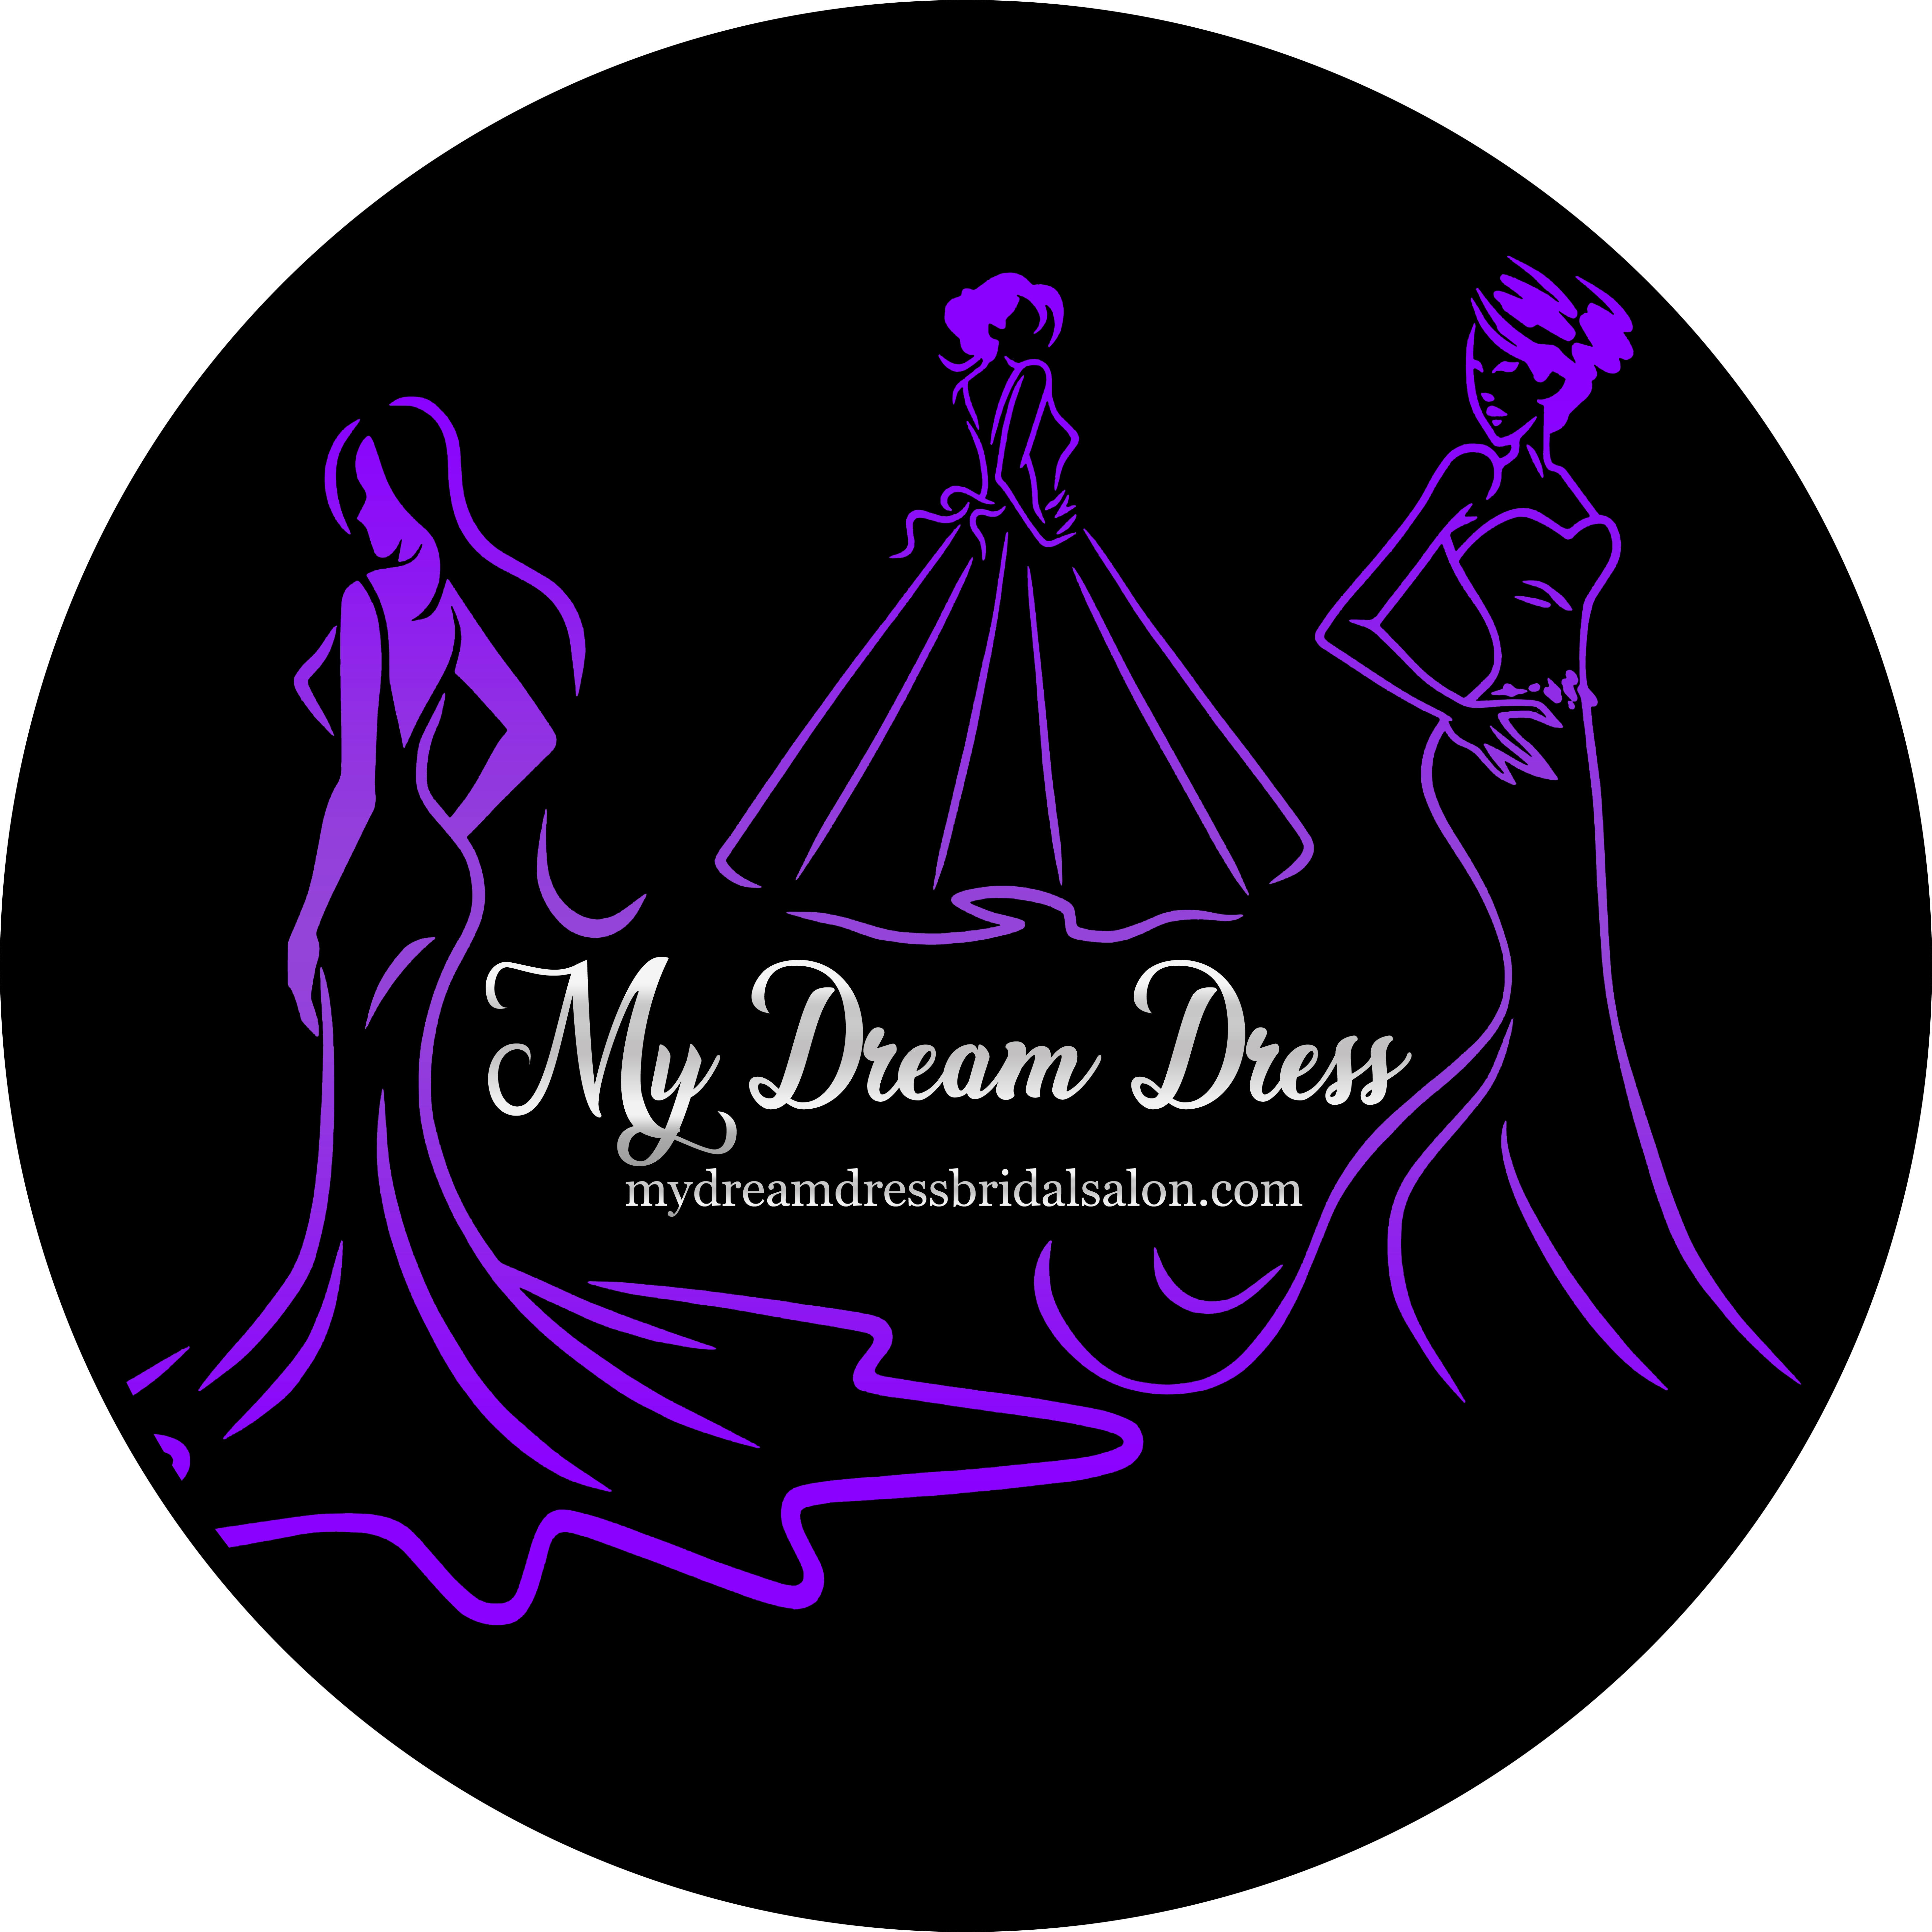 My Dream Dress Bridal Salon